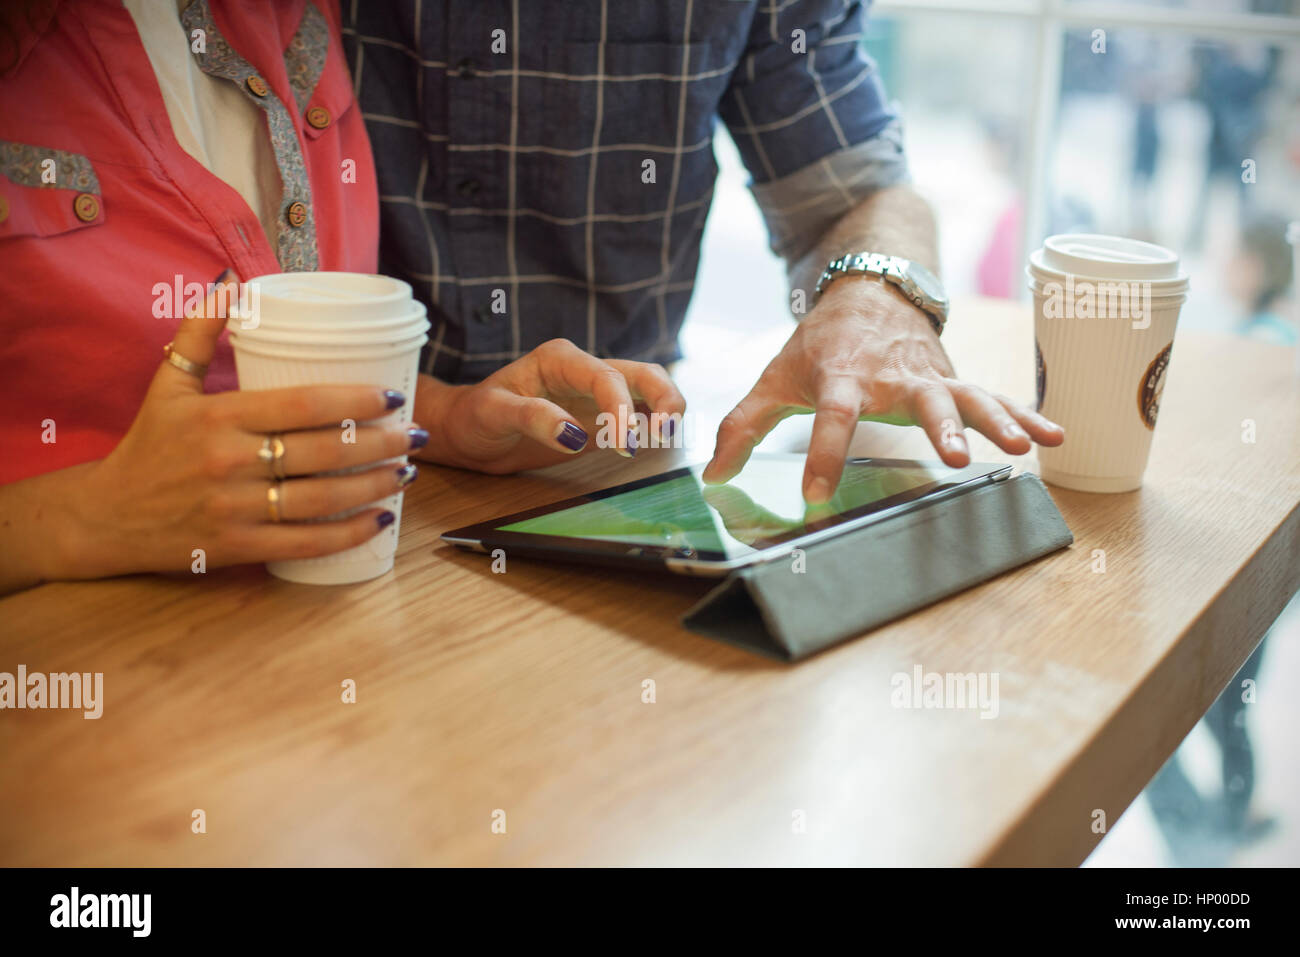 Couple using digital tablet in coffee shop, cropped - Stock Image